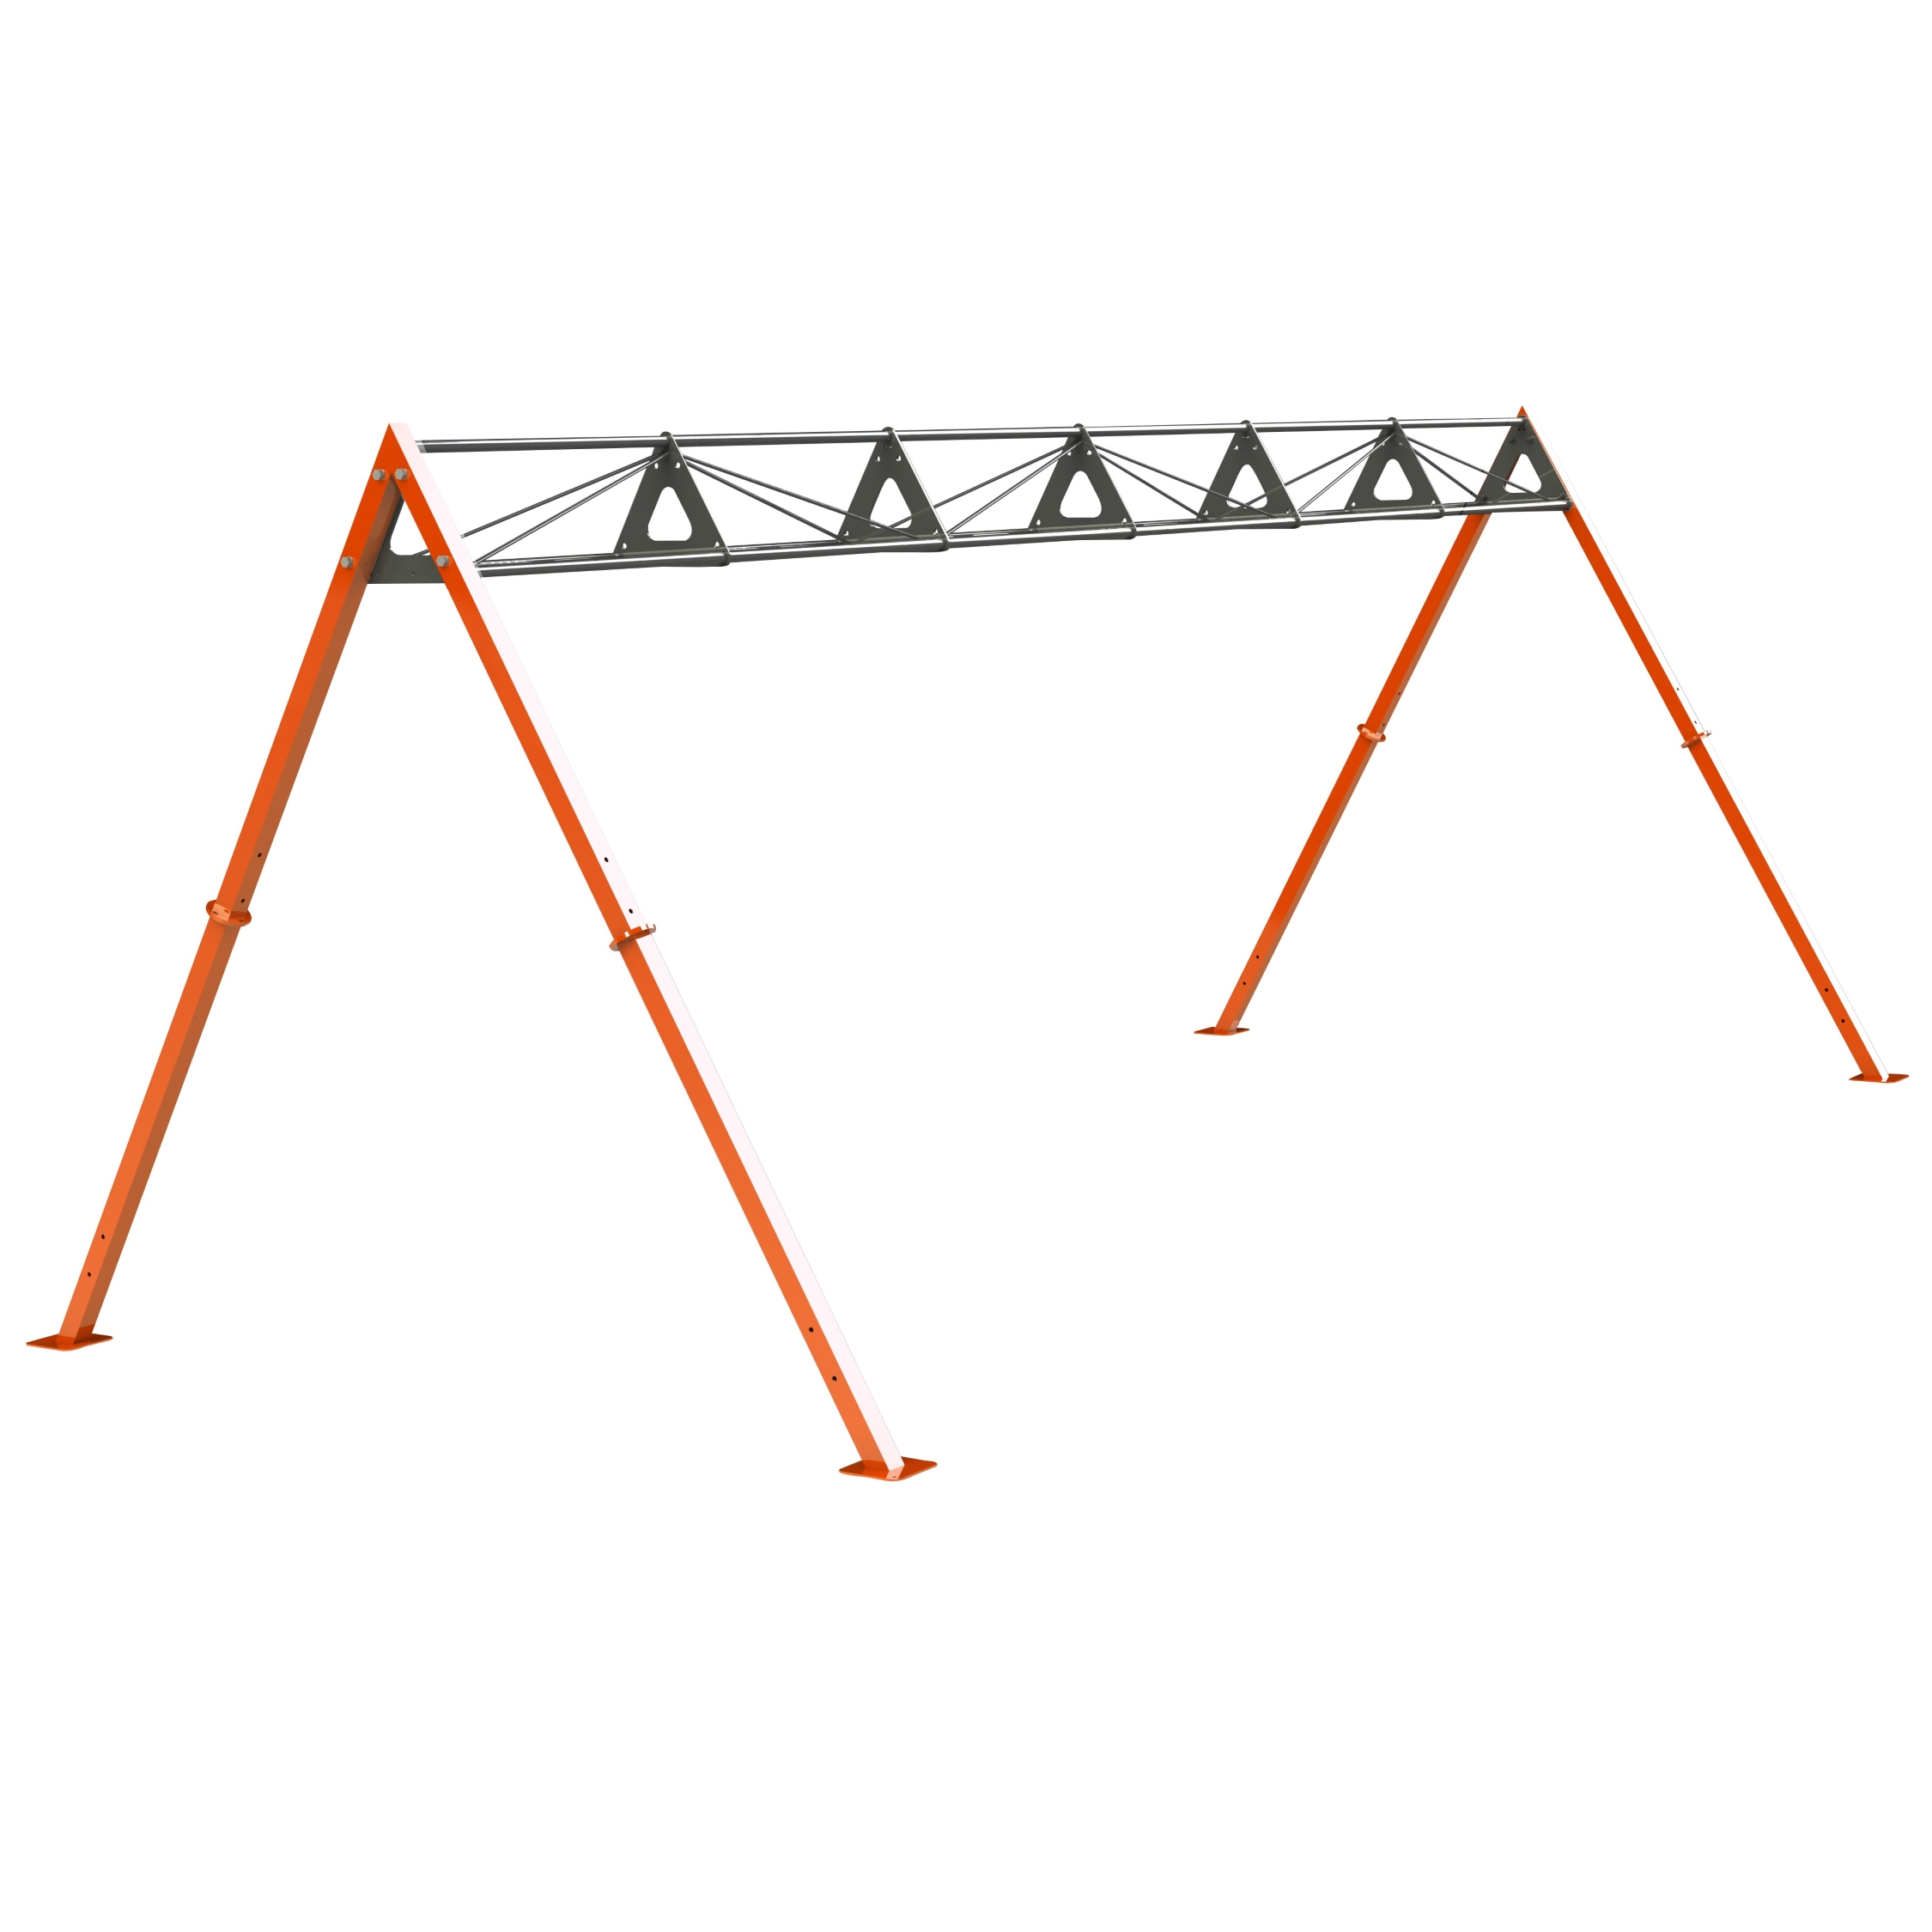 6m Suspension Training Frame (12 Users)